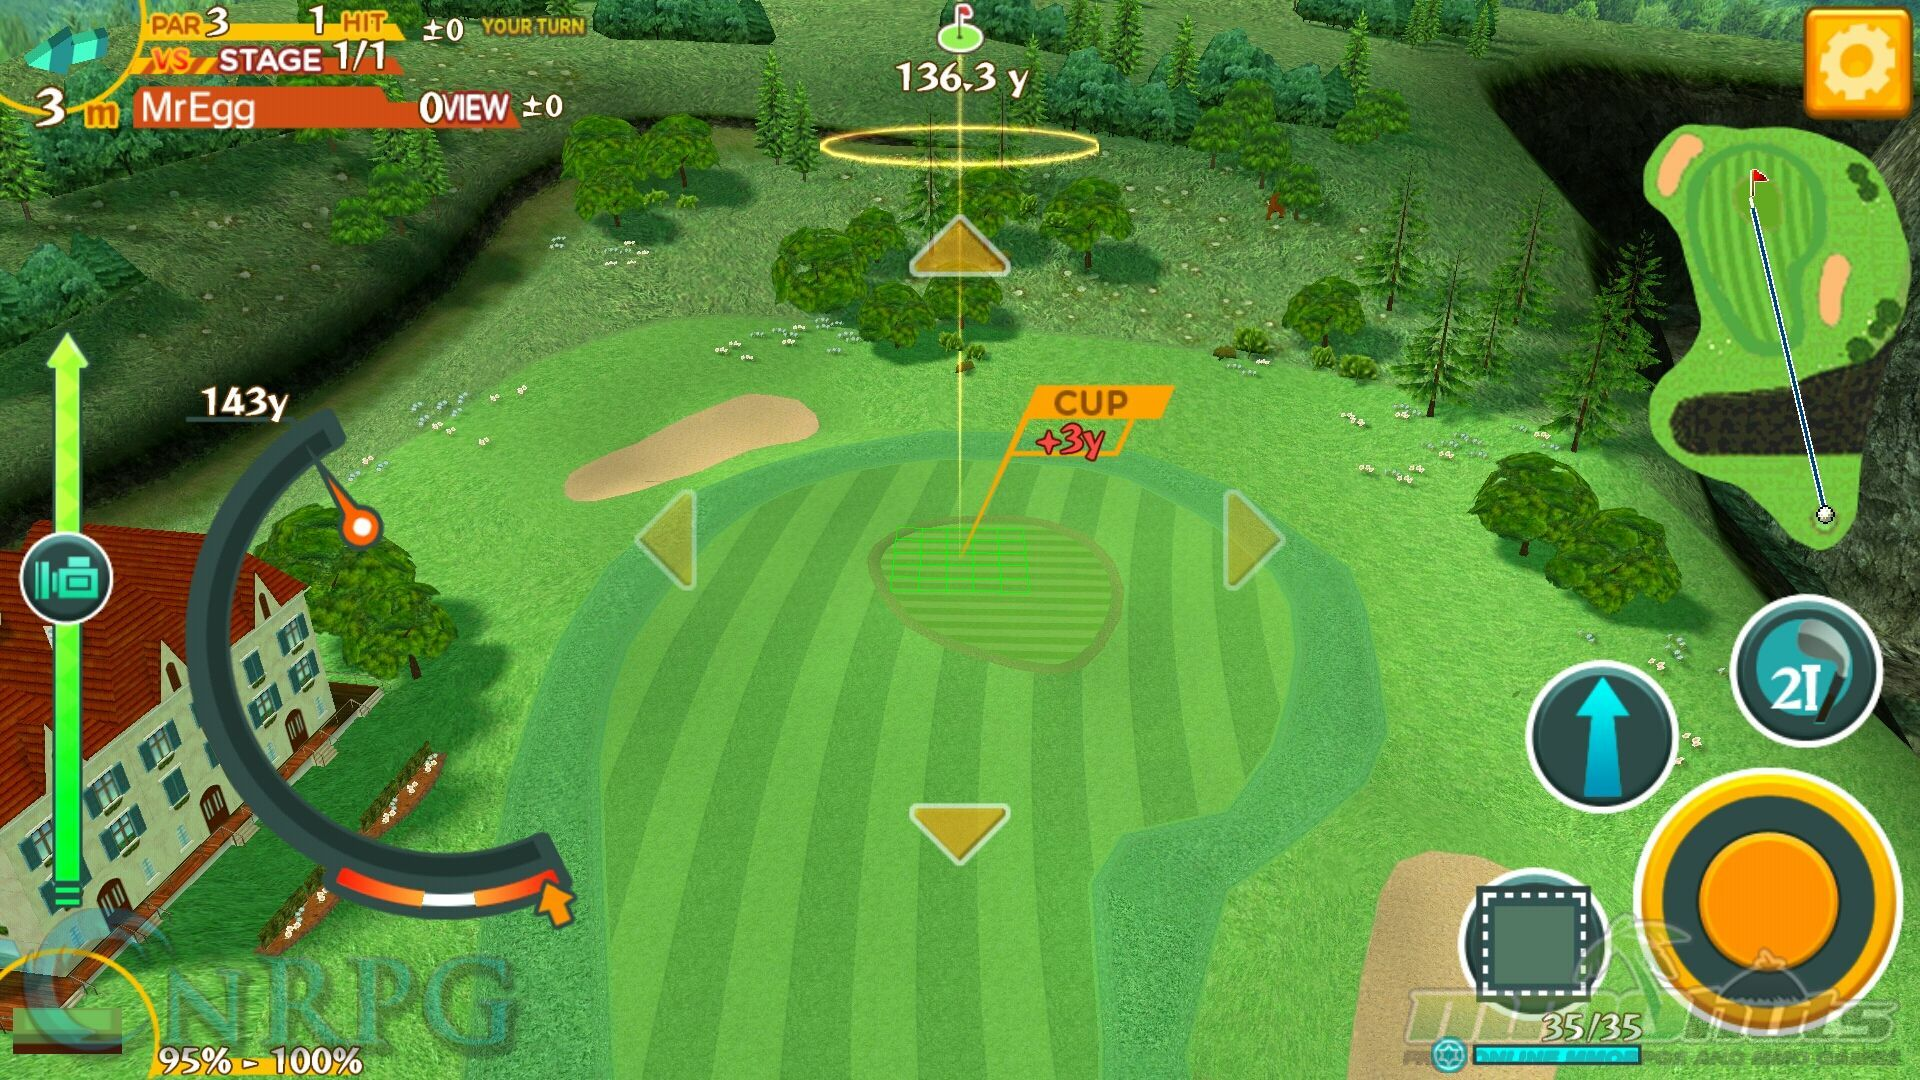 Eagle: Fatasy Golf Mobile Game Review